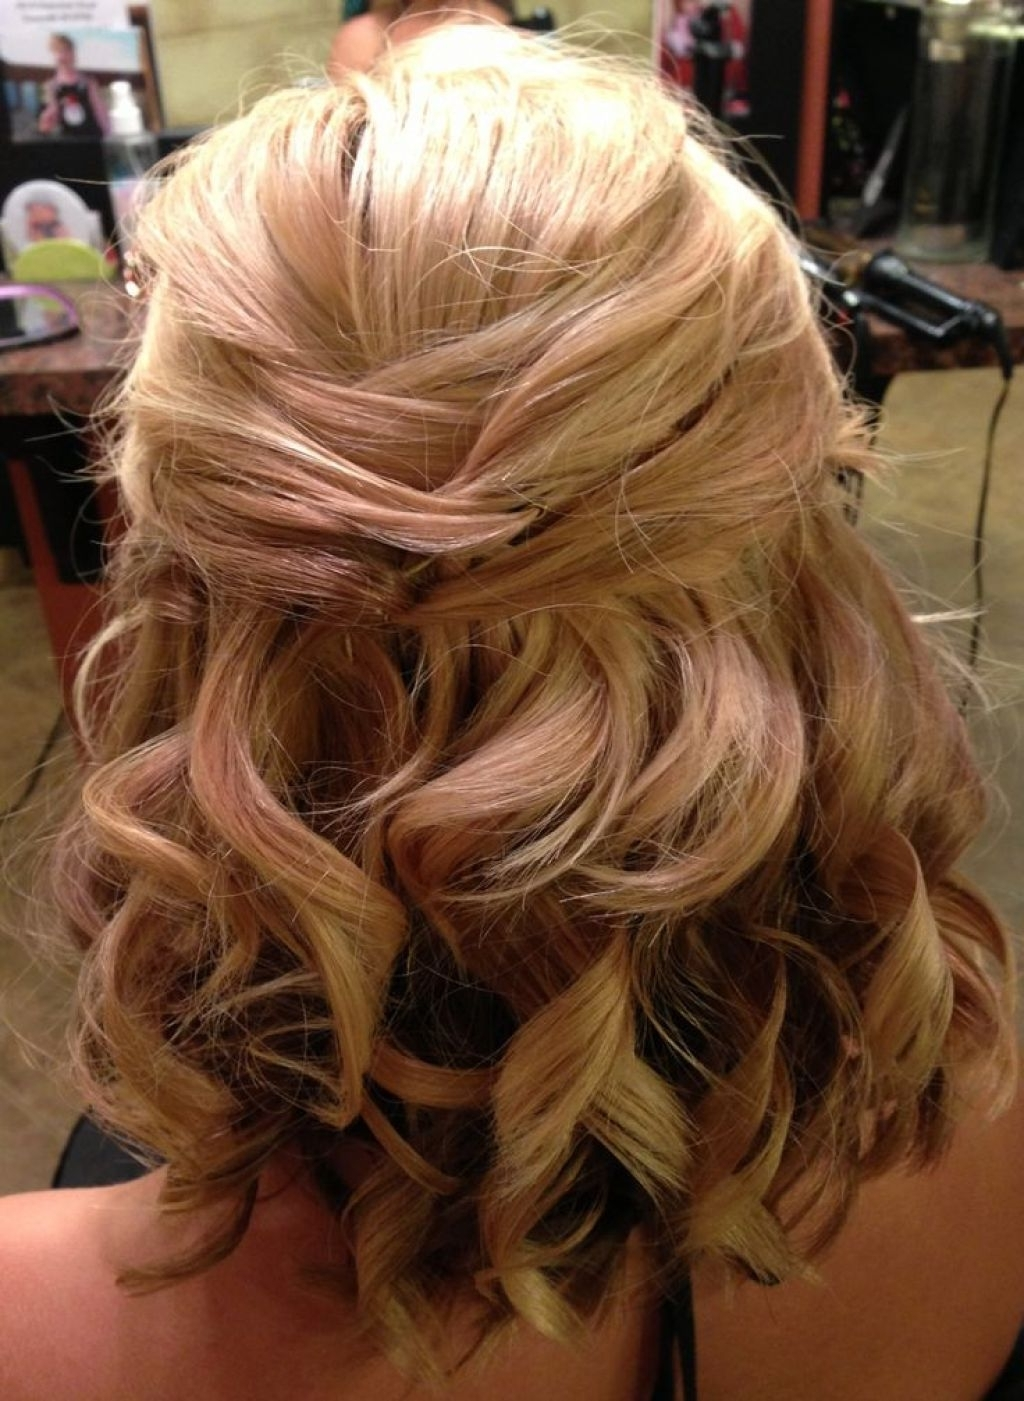 Widely Used Shoulder Length Wedding Hairstyles With 62 Half Up Half Down Wedding Hairstyles Fall In Love With (View 13 of 15)